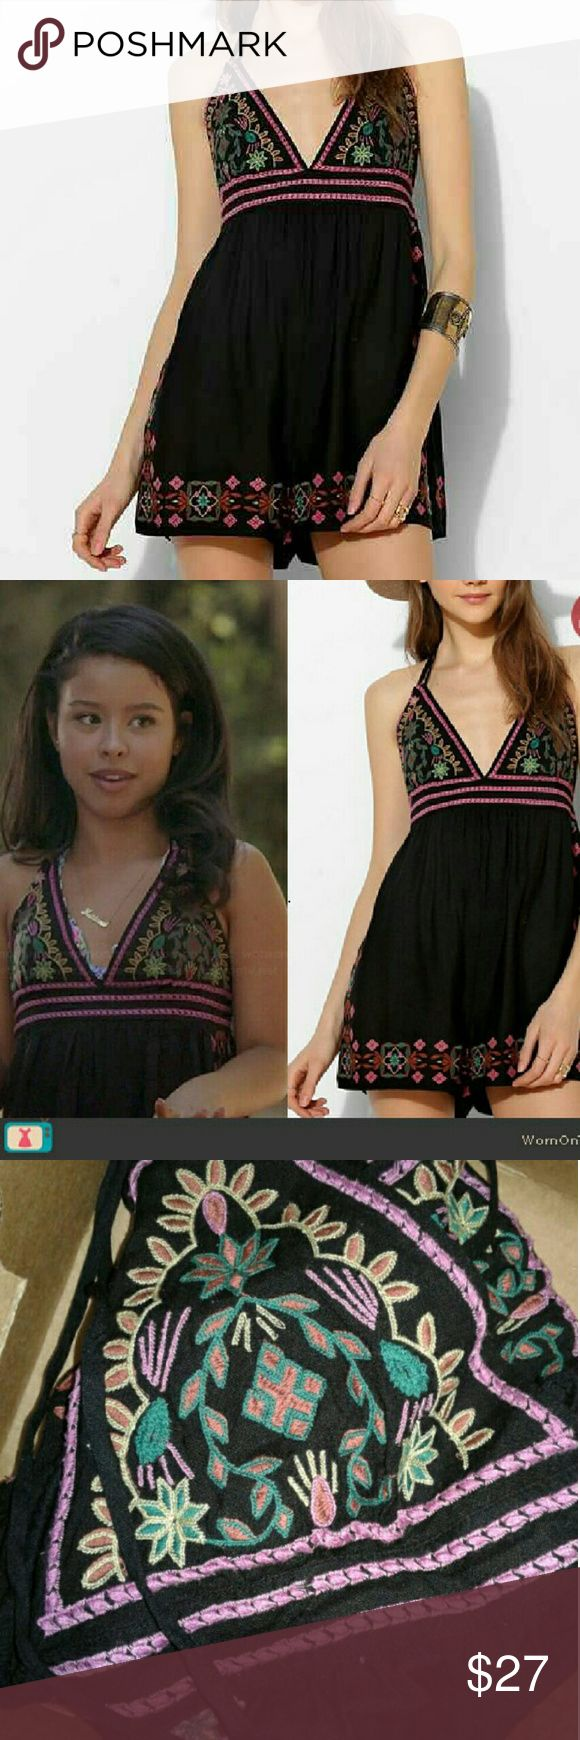 """Urban Outfitters Embroidered Romper / Ecote i actually bought it from someone else on here ,and it ended up being too big cuz im a size small and its a size medium , so thats why im selling it , it was listed as """"Like New"""" when i bought it , i havent worn it only tried on , ill still wash before sending it out , it was originally $89 (: Mariana from the show The Fosters actually wore the exact same one as u can see in pic 2 , the episode """"Mother Nature"""" she wore it in , if u wanted to get a…"""